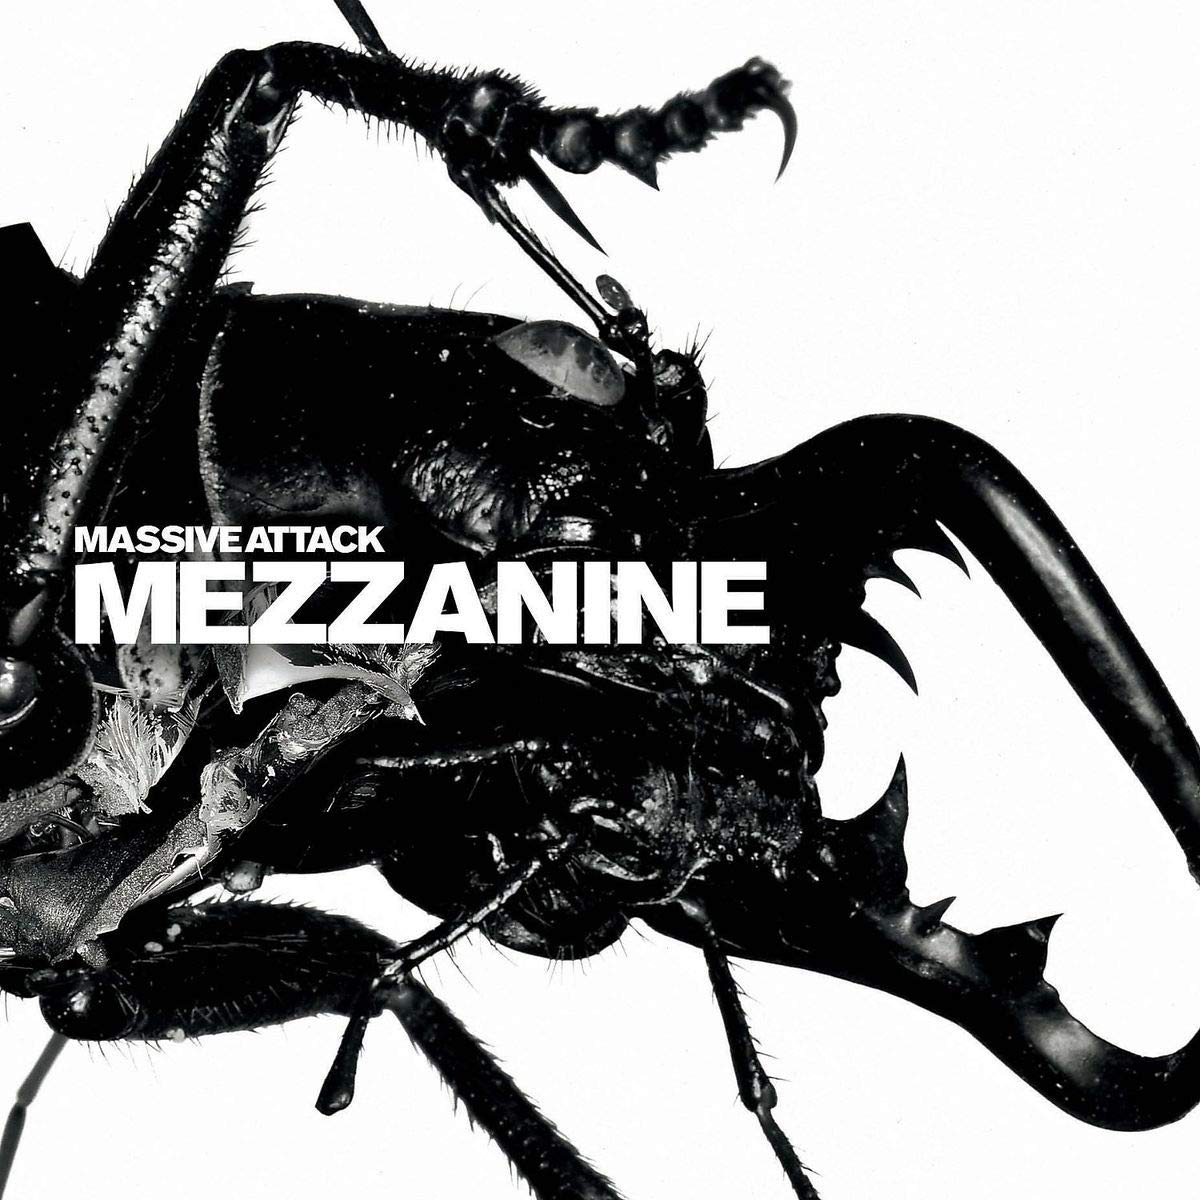 CD : Massive Attack - Mezzanine (Deluxe Edition)